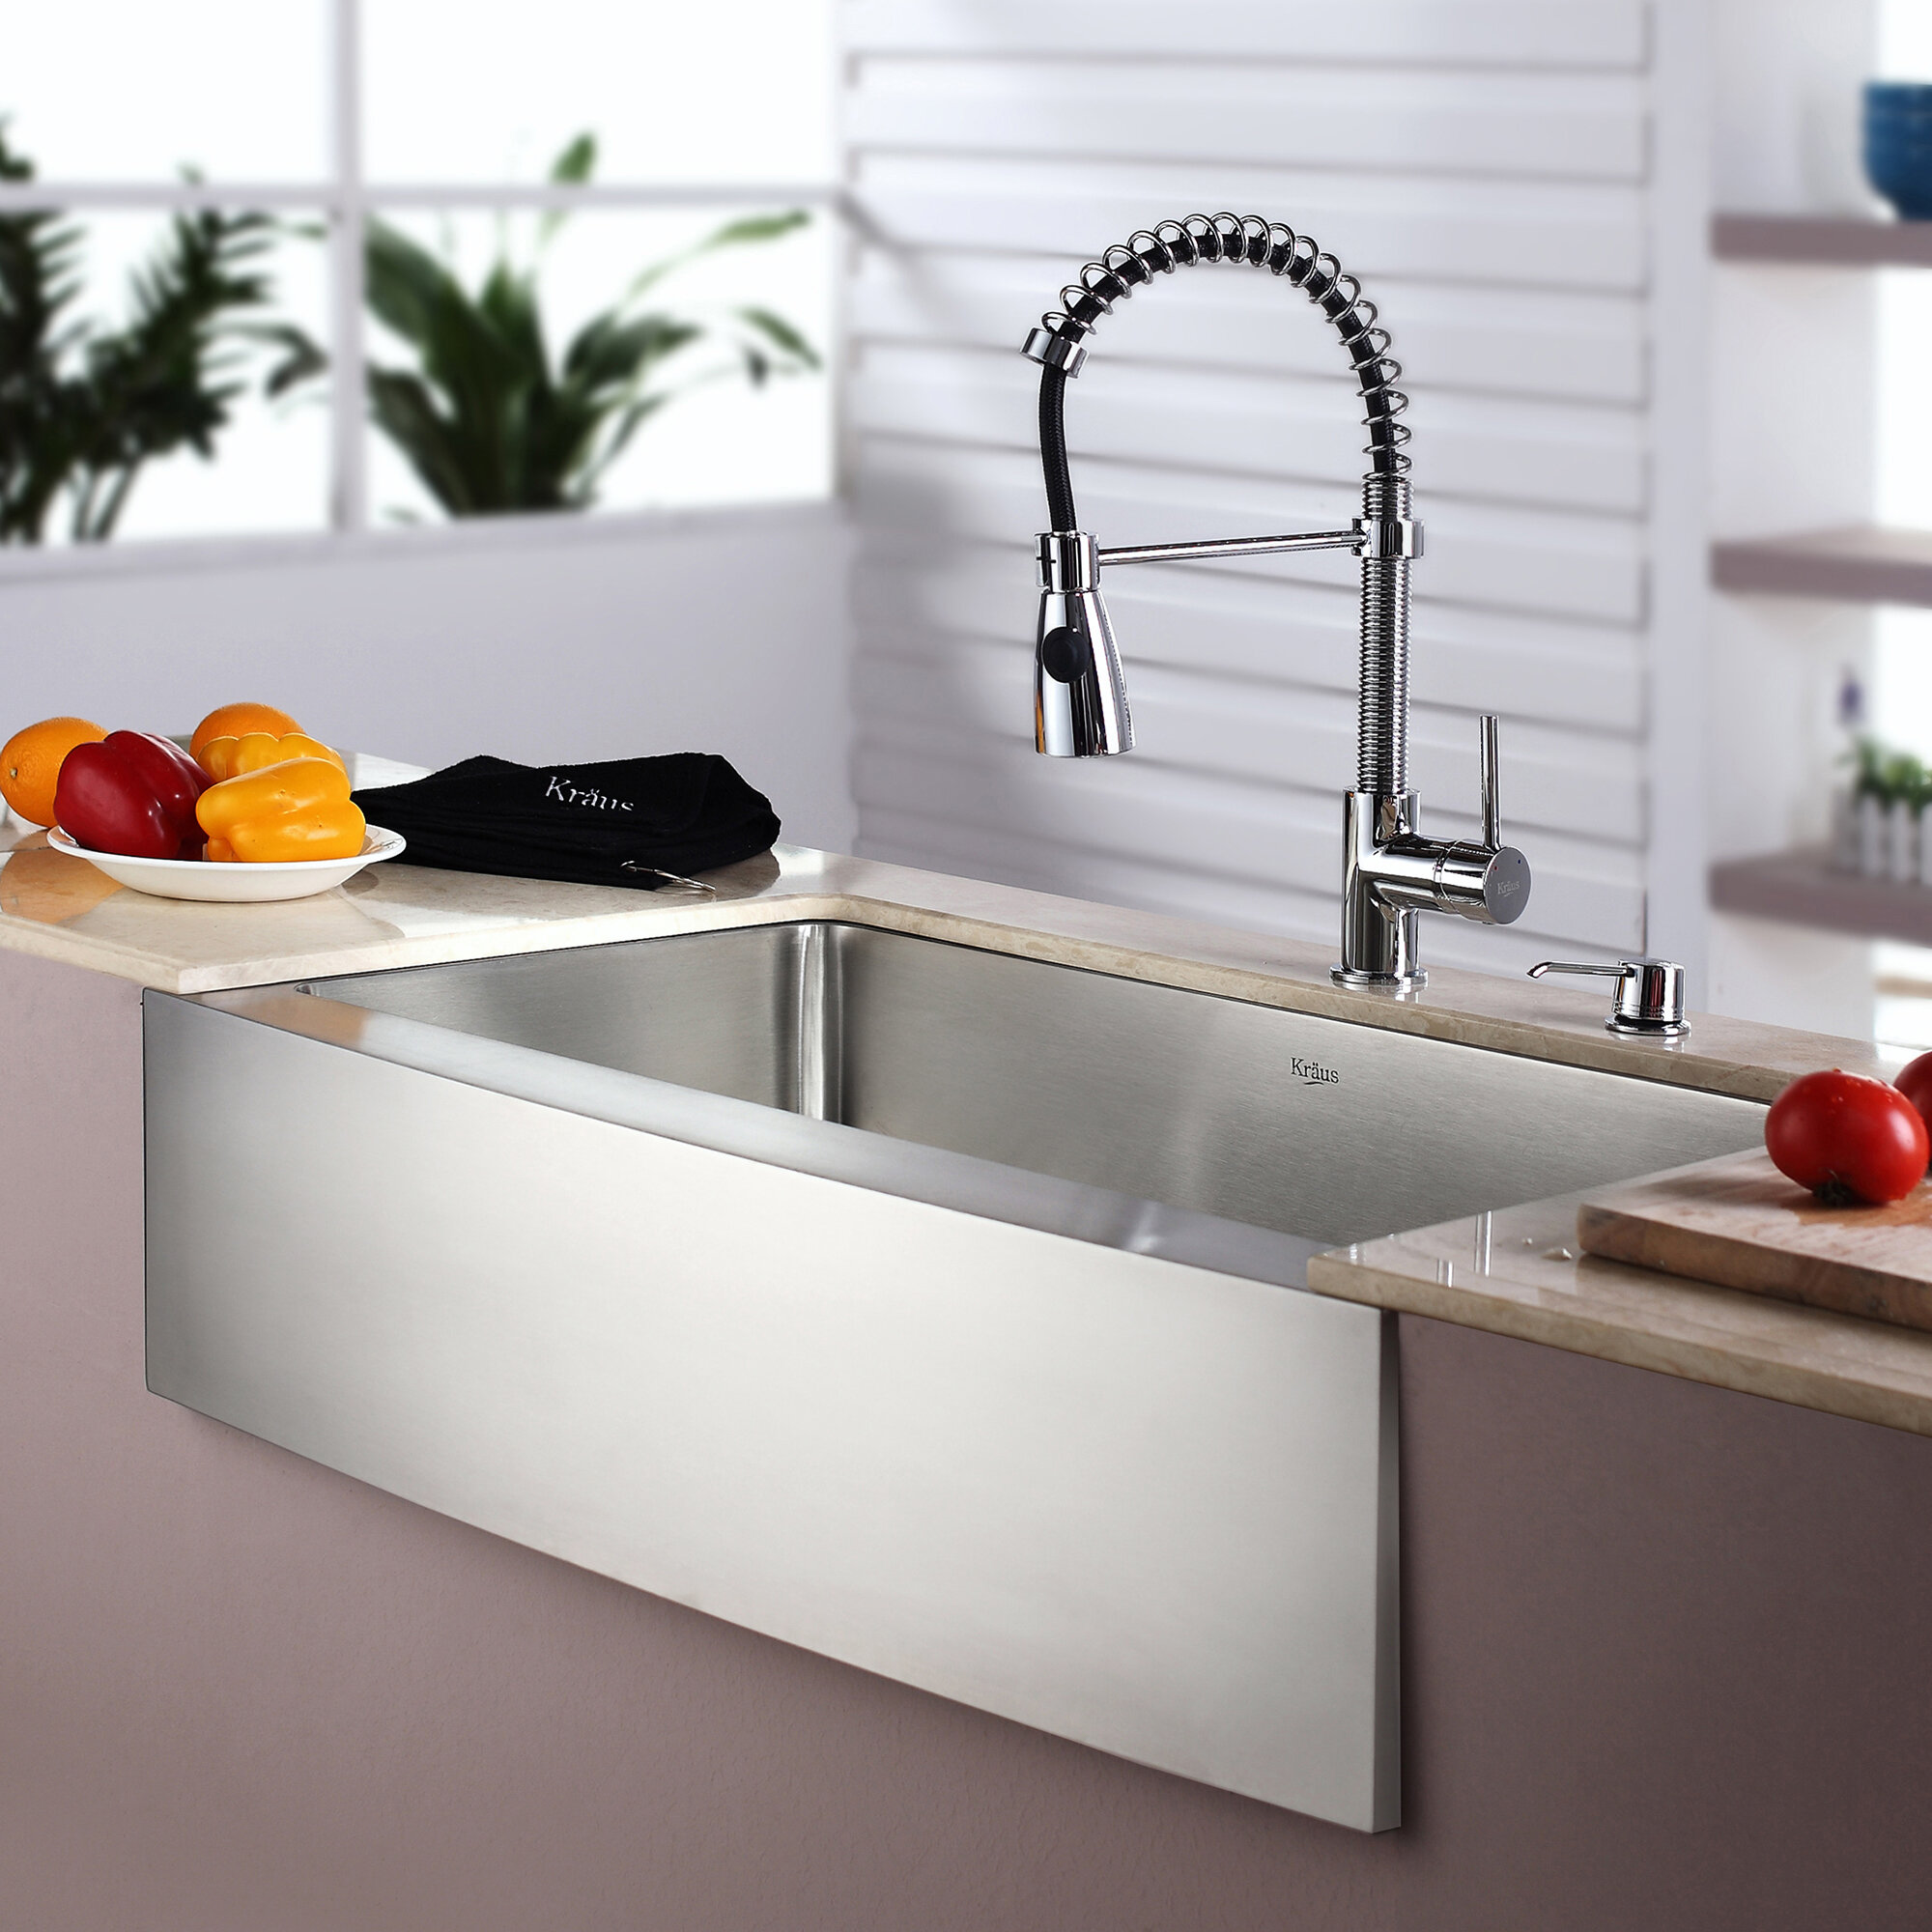 enchanting ideas towels pictures attractive kitchenaid top trends current photograph rated of in hoods inspirational with the exterior faucets faucet design furniture dishwasher matter also kitchen cabinets